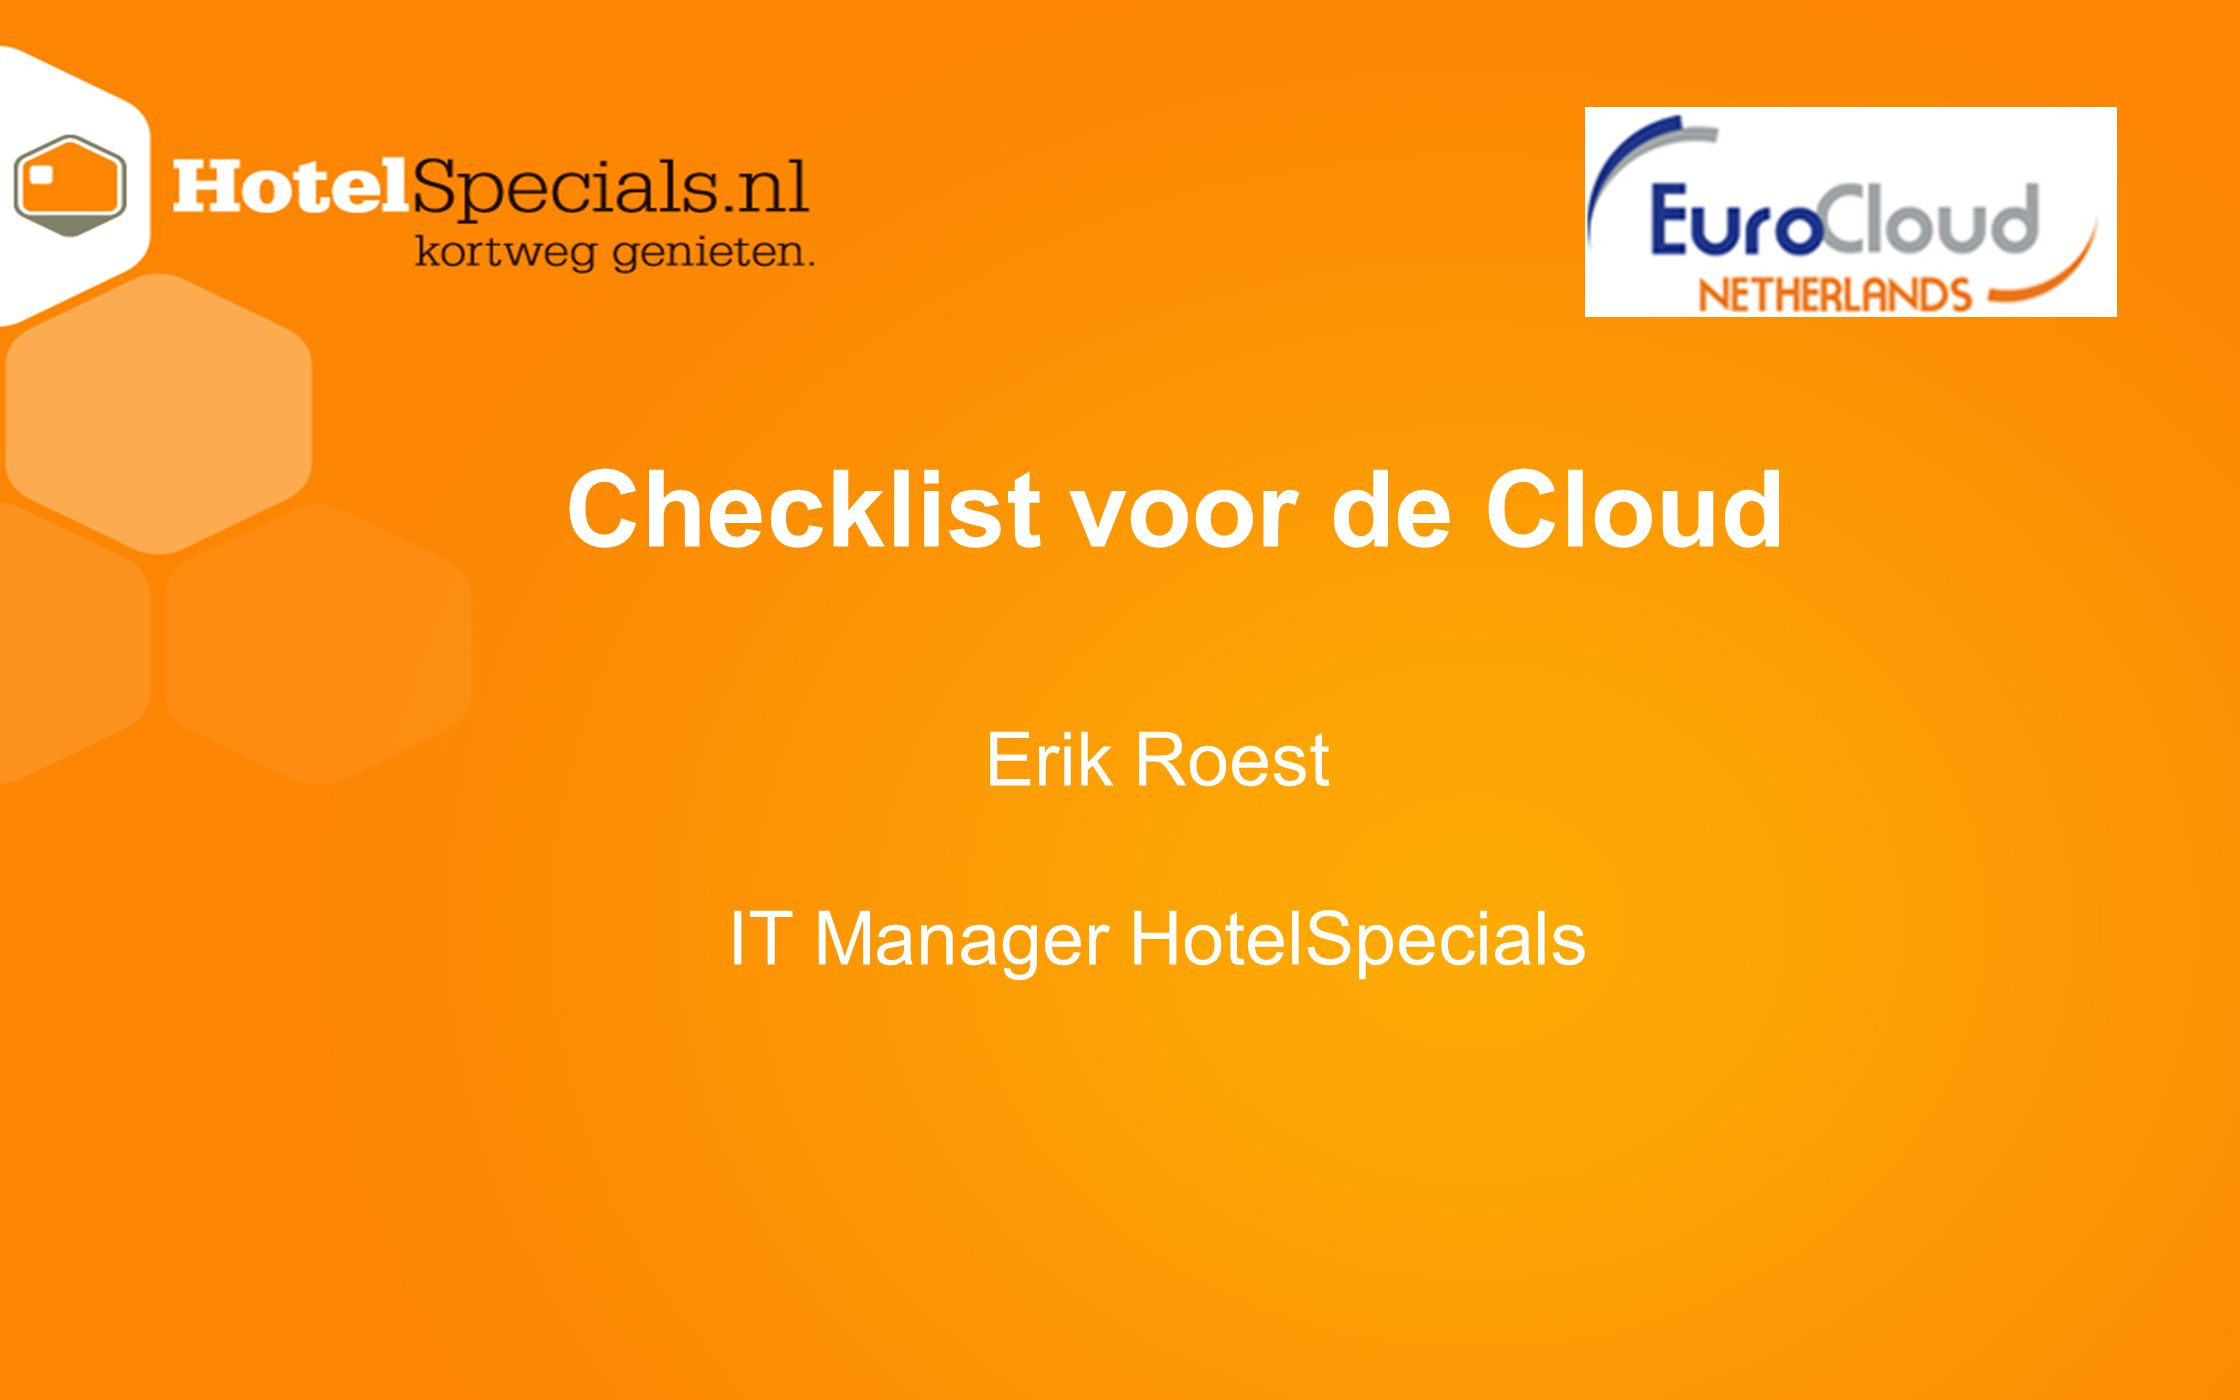 Checklist voor de Cloud